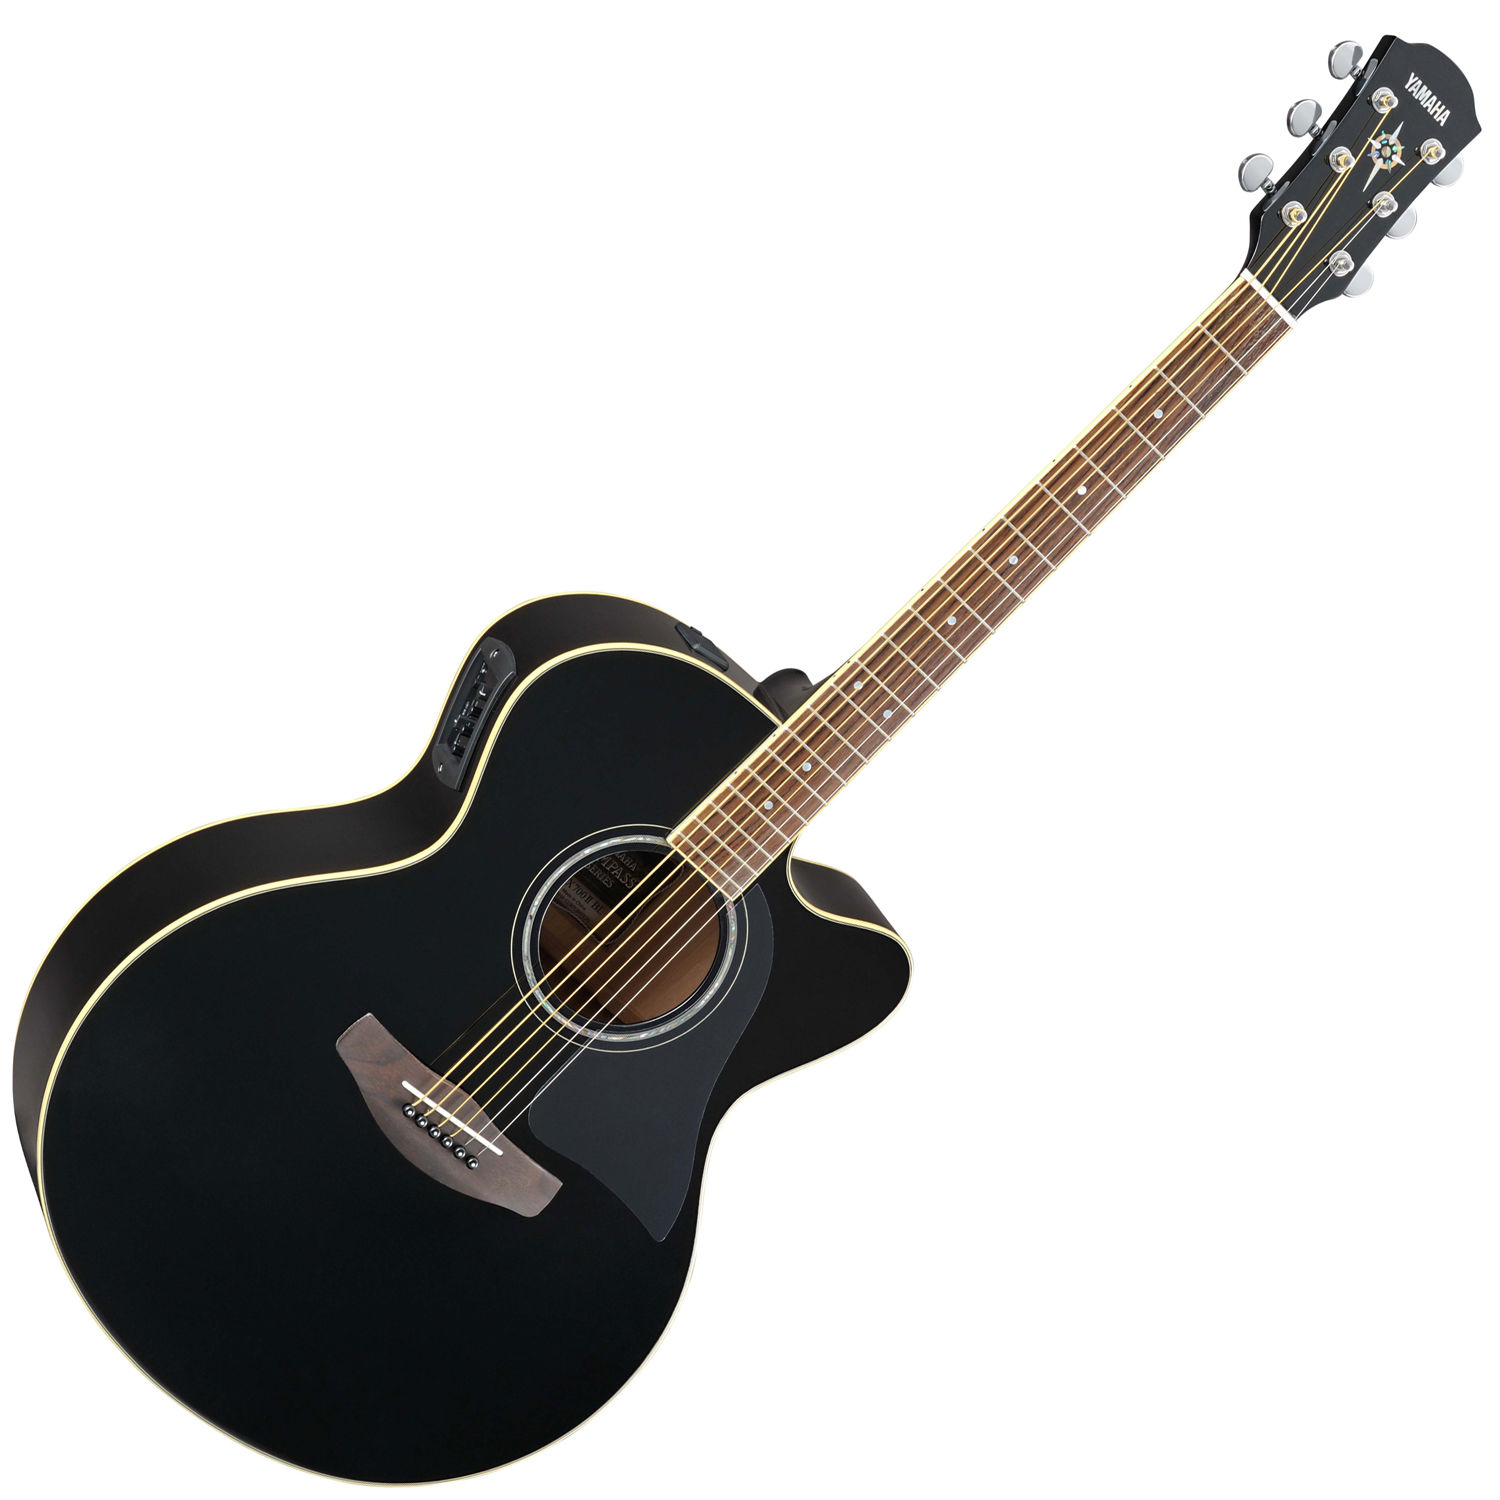 musicworks guitars acoustic electric guitars acoustic electric guitar yamaha cpx. Black Bedroom Furniture Sets. Home Design Ideas